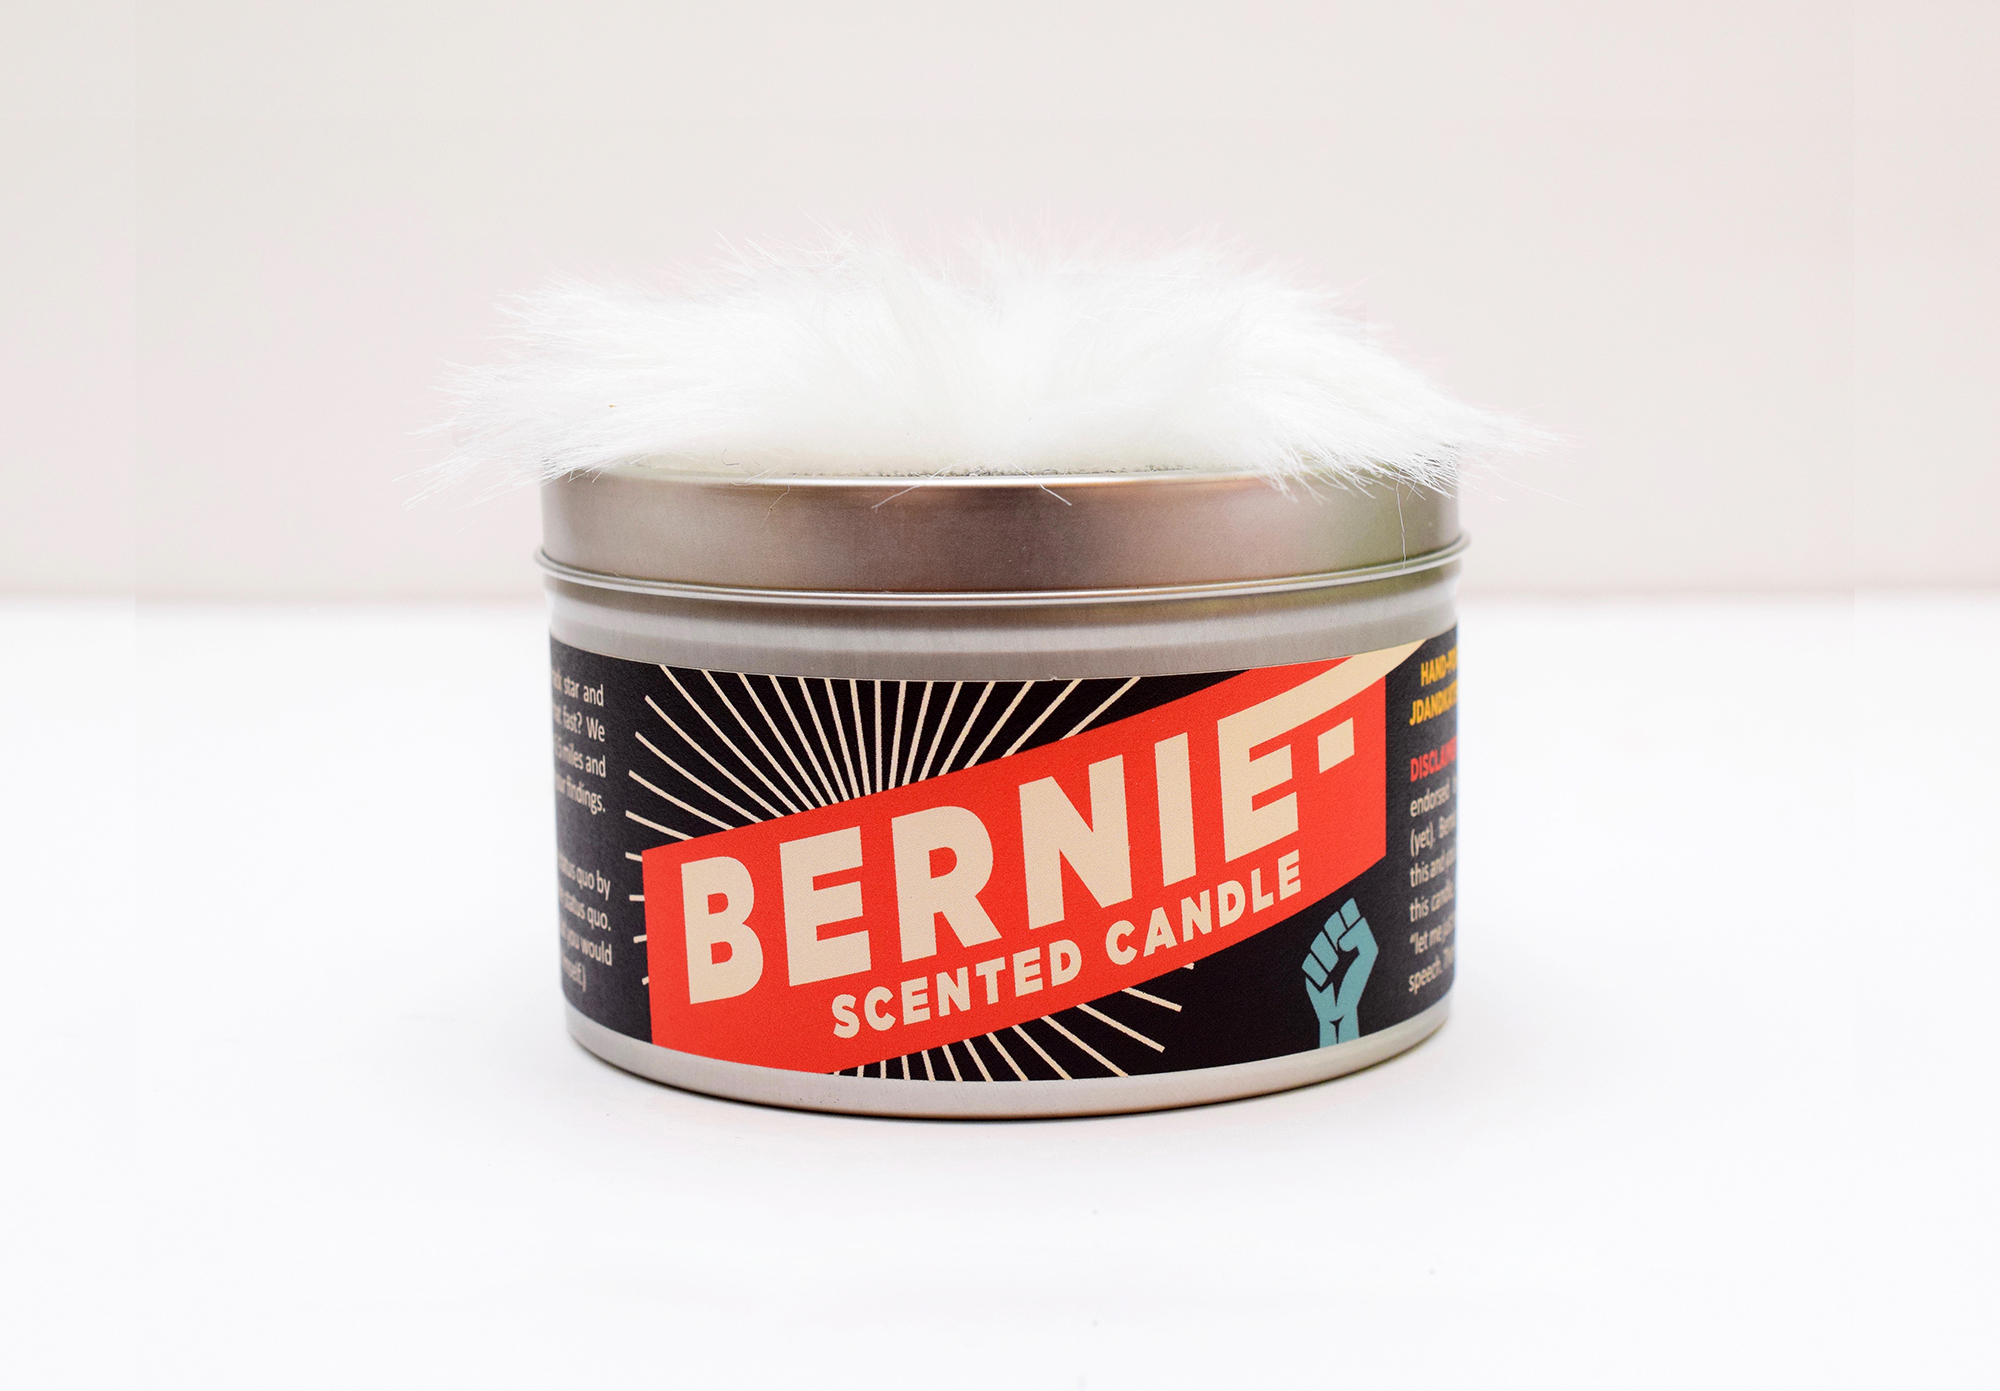 The Bernie-Scented Candle